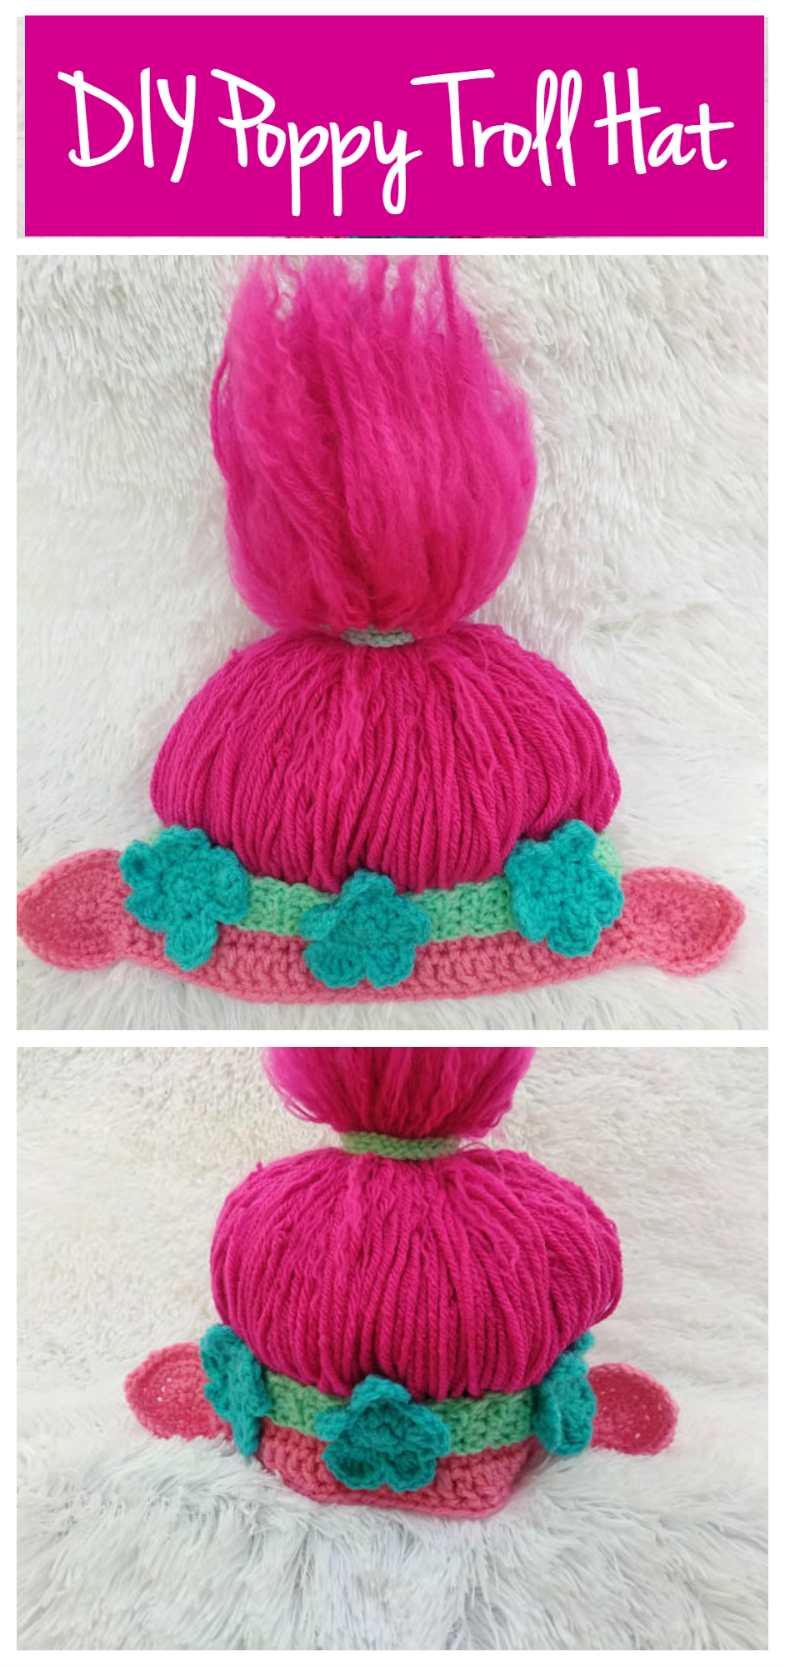 DIY Poppy Troll Hat Crochet Pattern. PDF Instant Download #DIY #crochet # Trolls